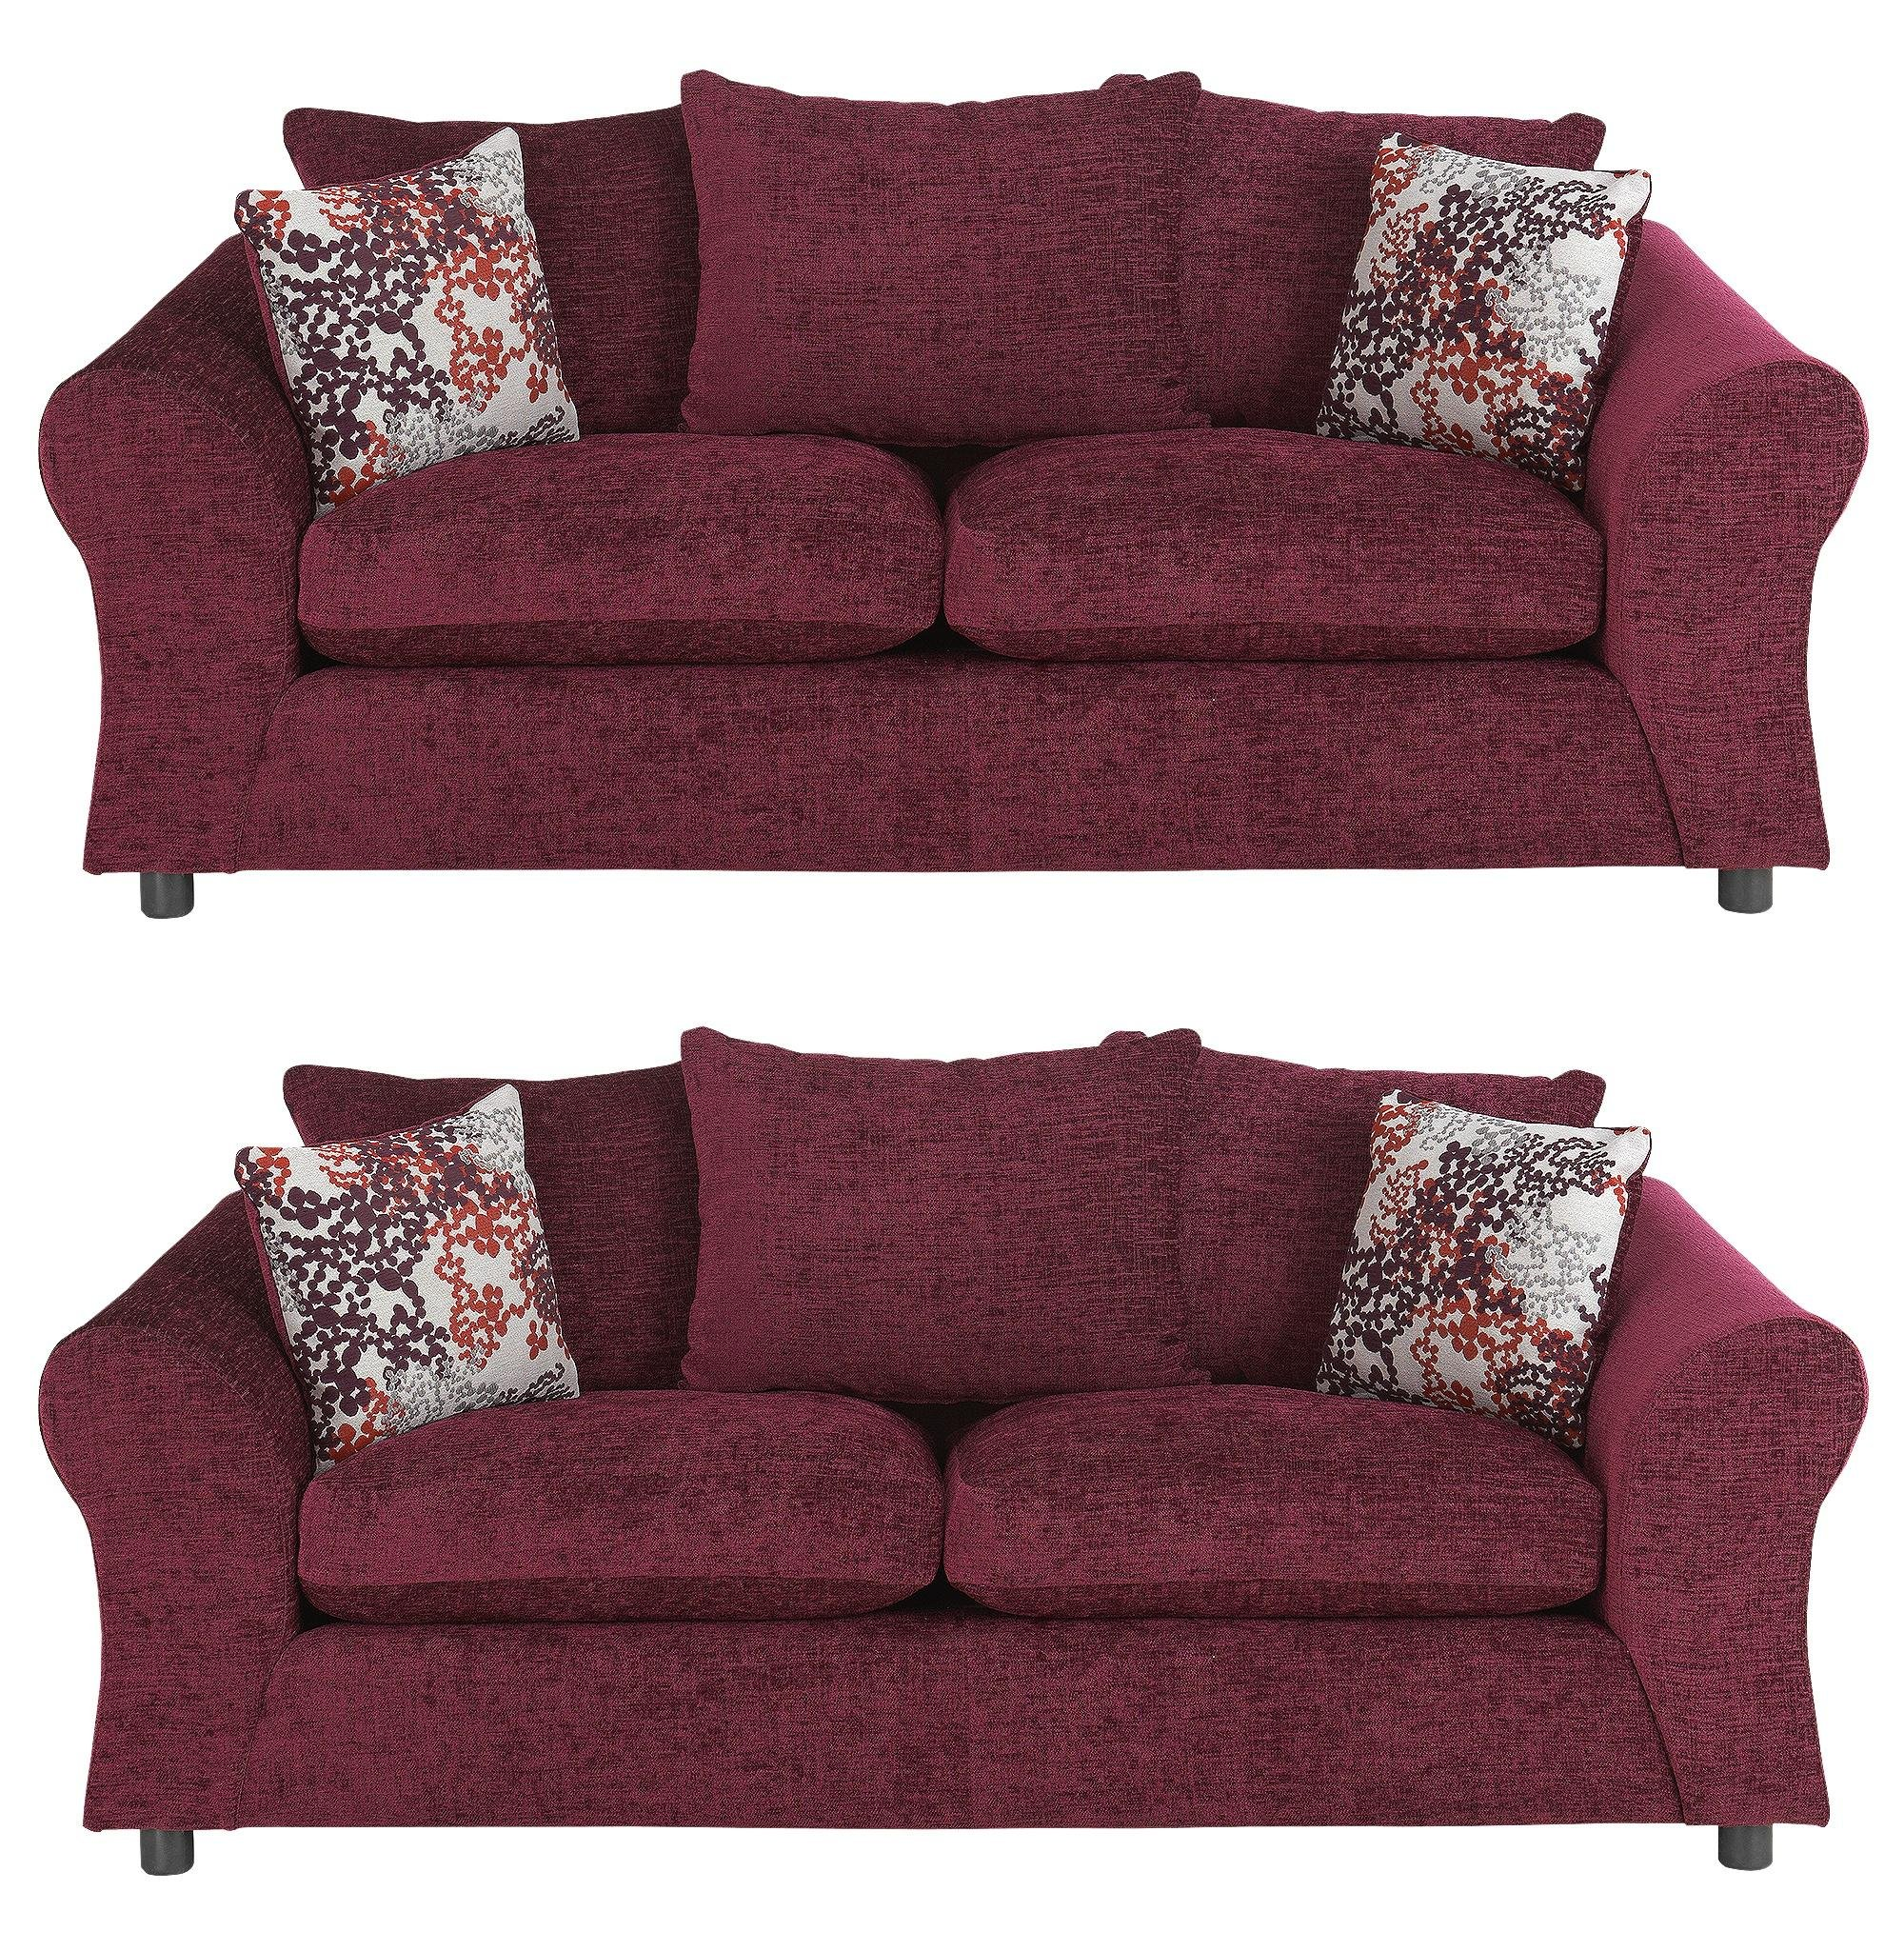 Argos Home Clara Fabric Pair Of 3 Seater Sofas   Plum